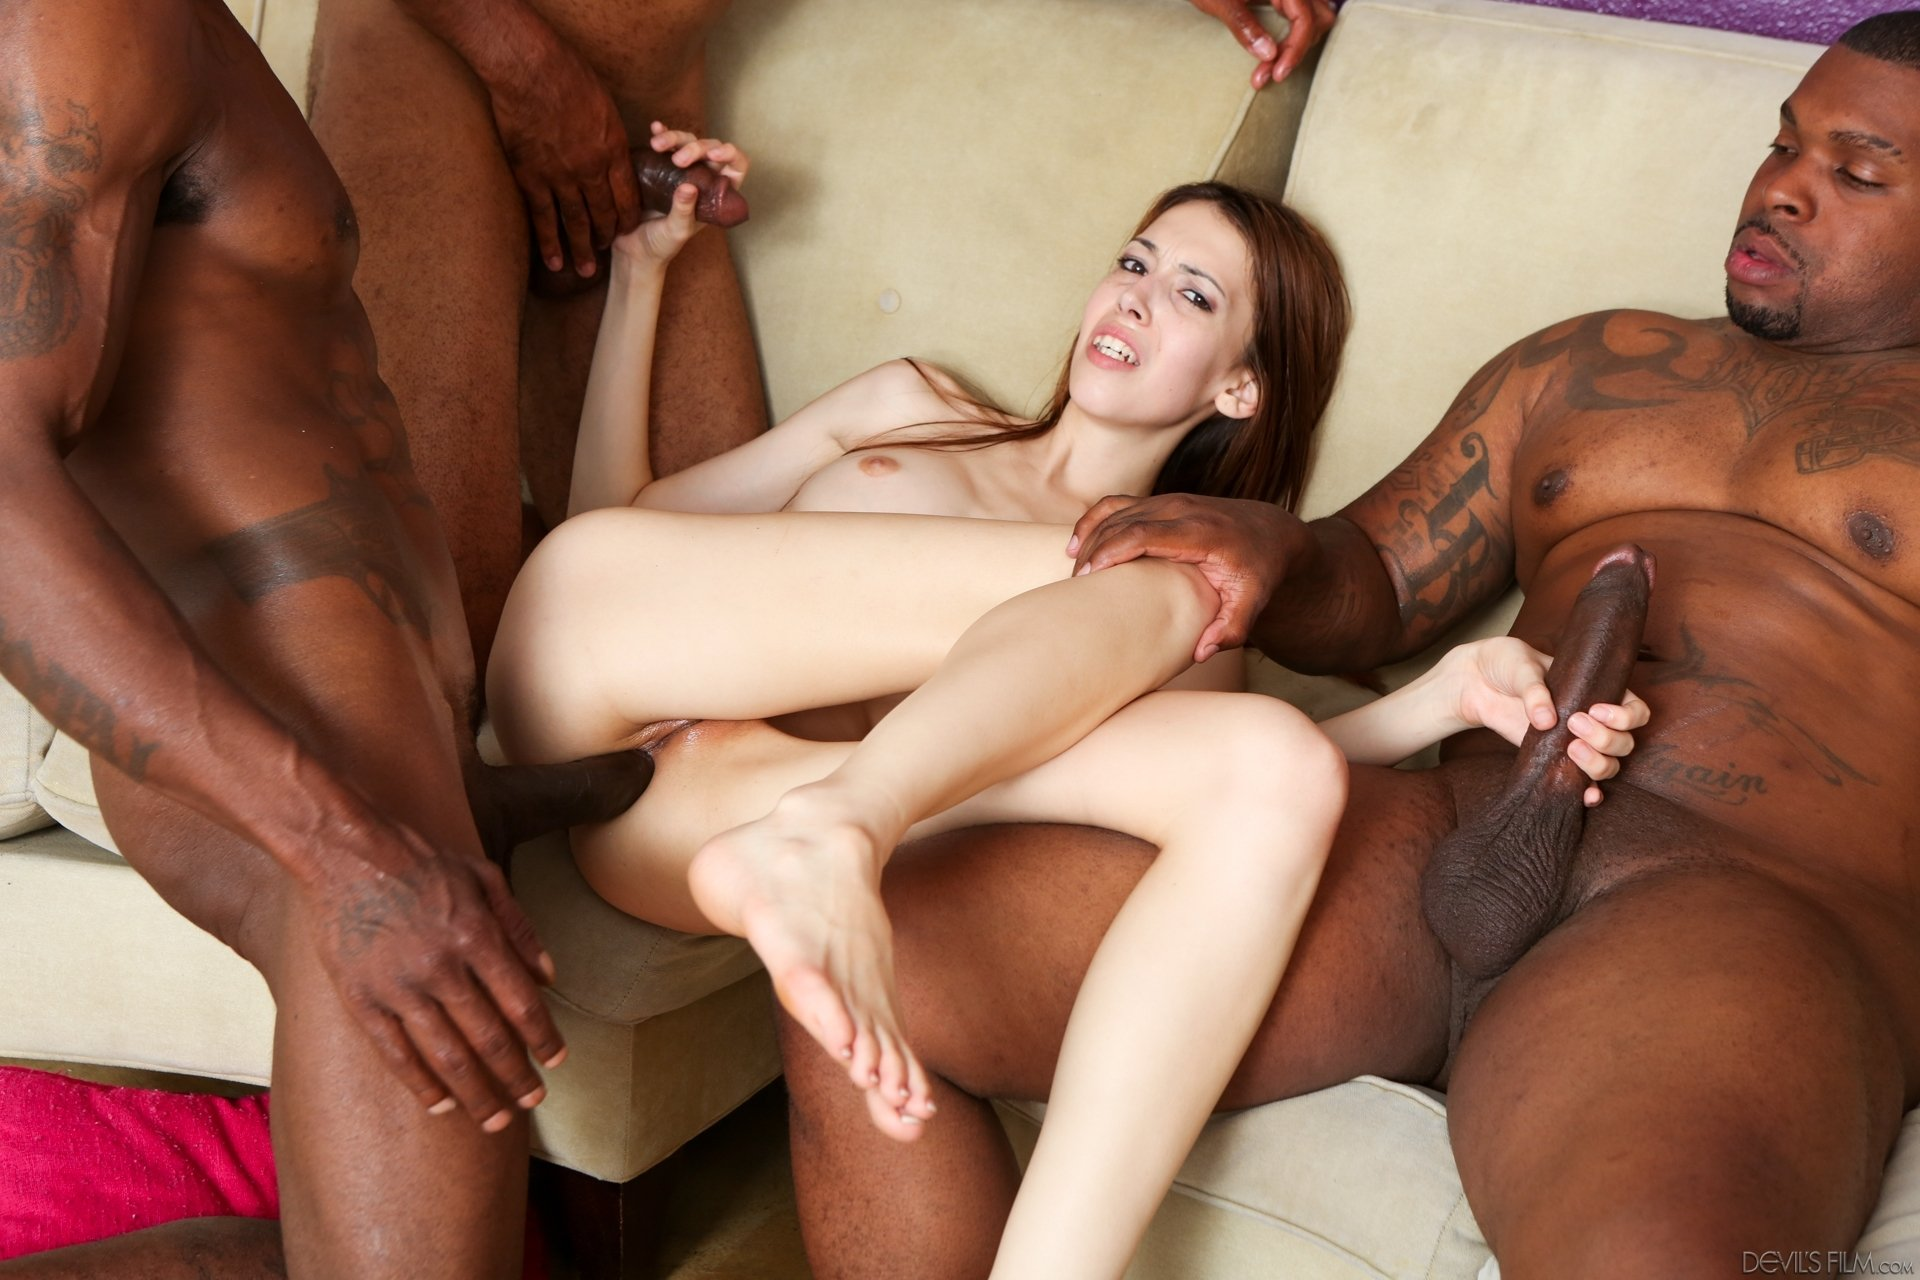 Hot xxx interracial gang bang freeporn anime tiny